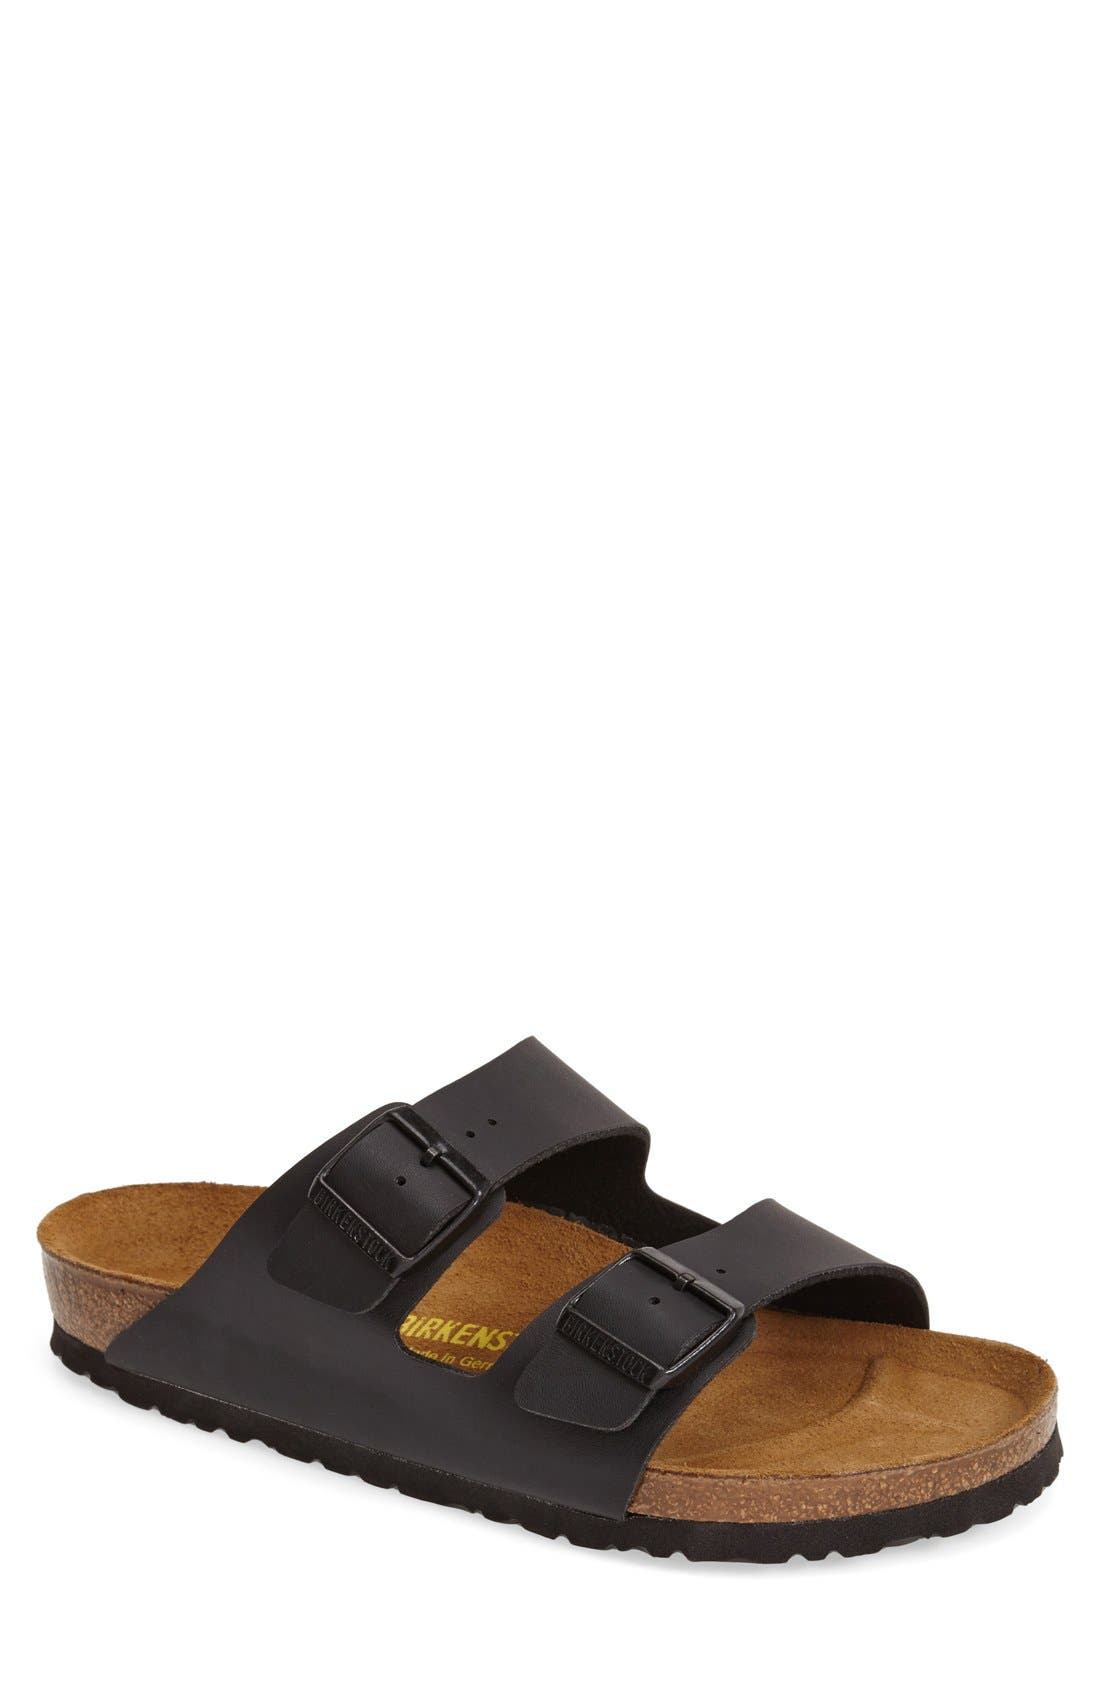 BIRKENSTOCK 'Arizona' Slide Sandal, Main, color, BLACK